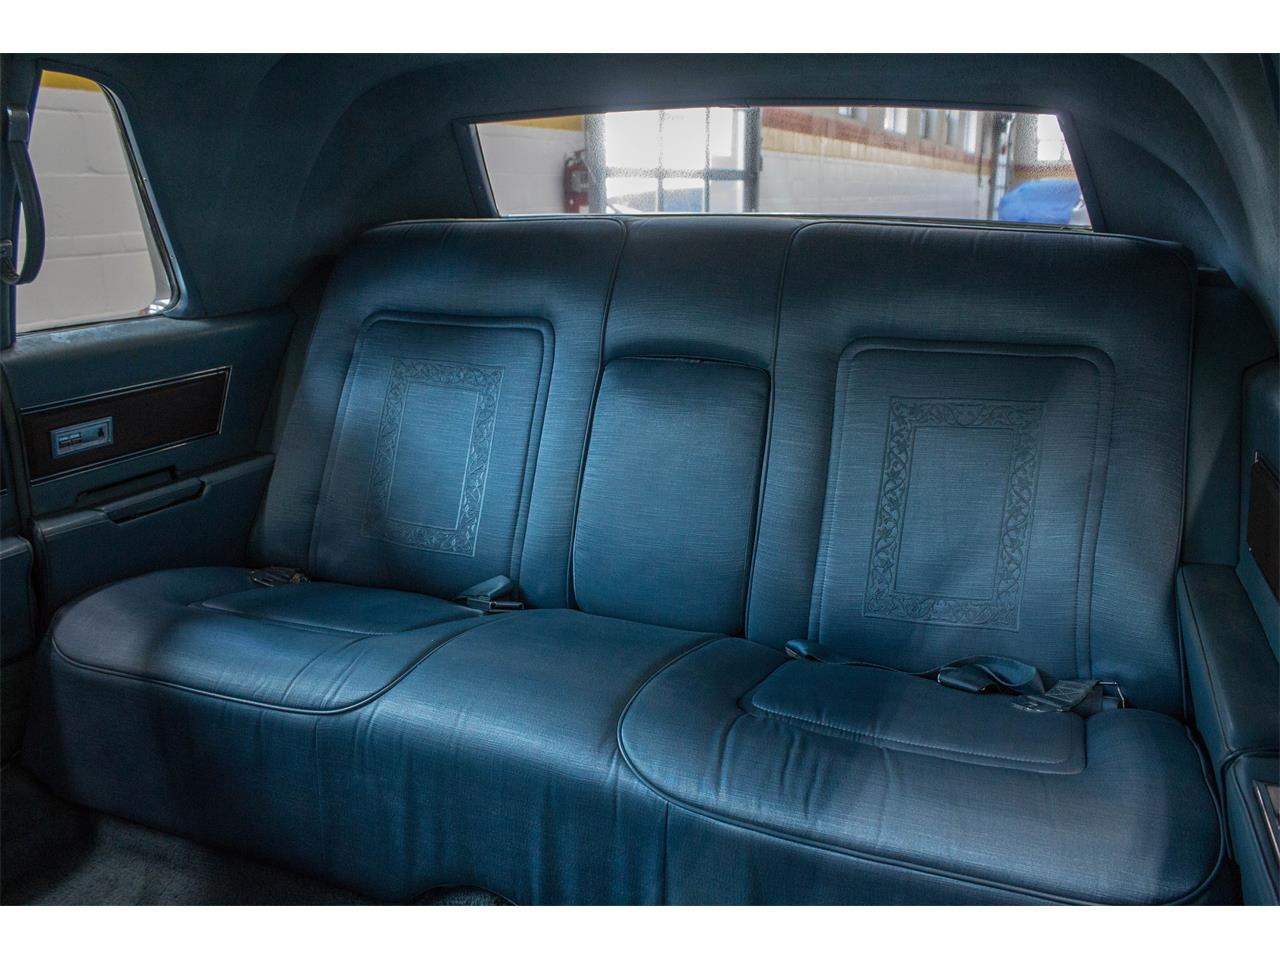 Large Picture of Classic 1966 Cadillac Fleetwood Limousine - $49,995.00 Offered by John Scotti Classic Cars - NKXQ